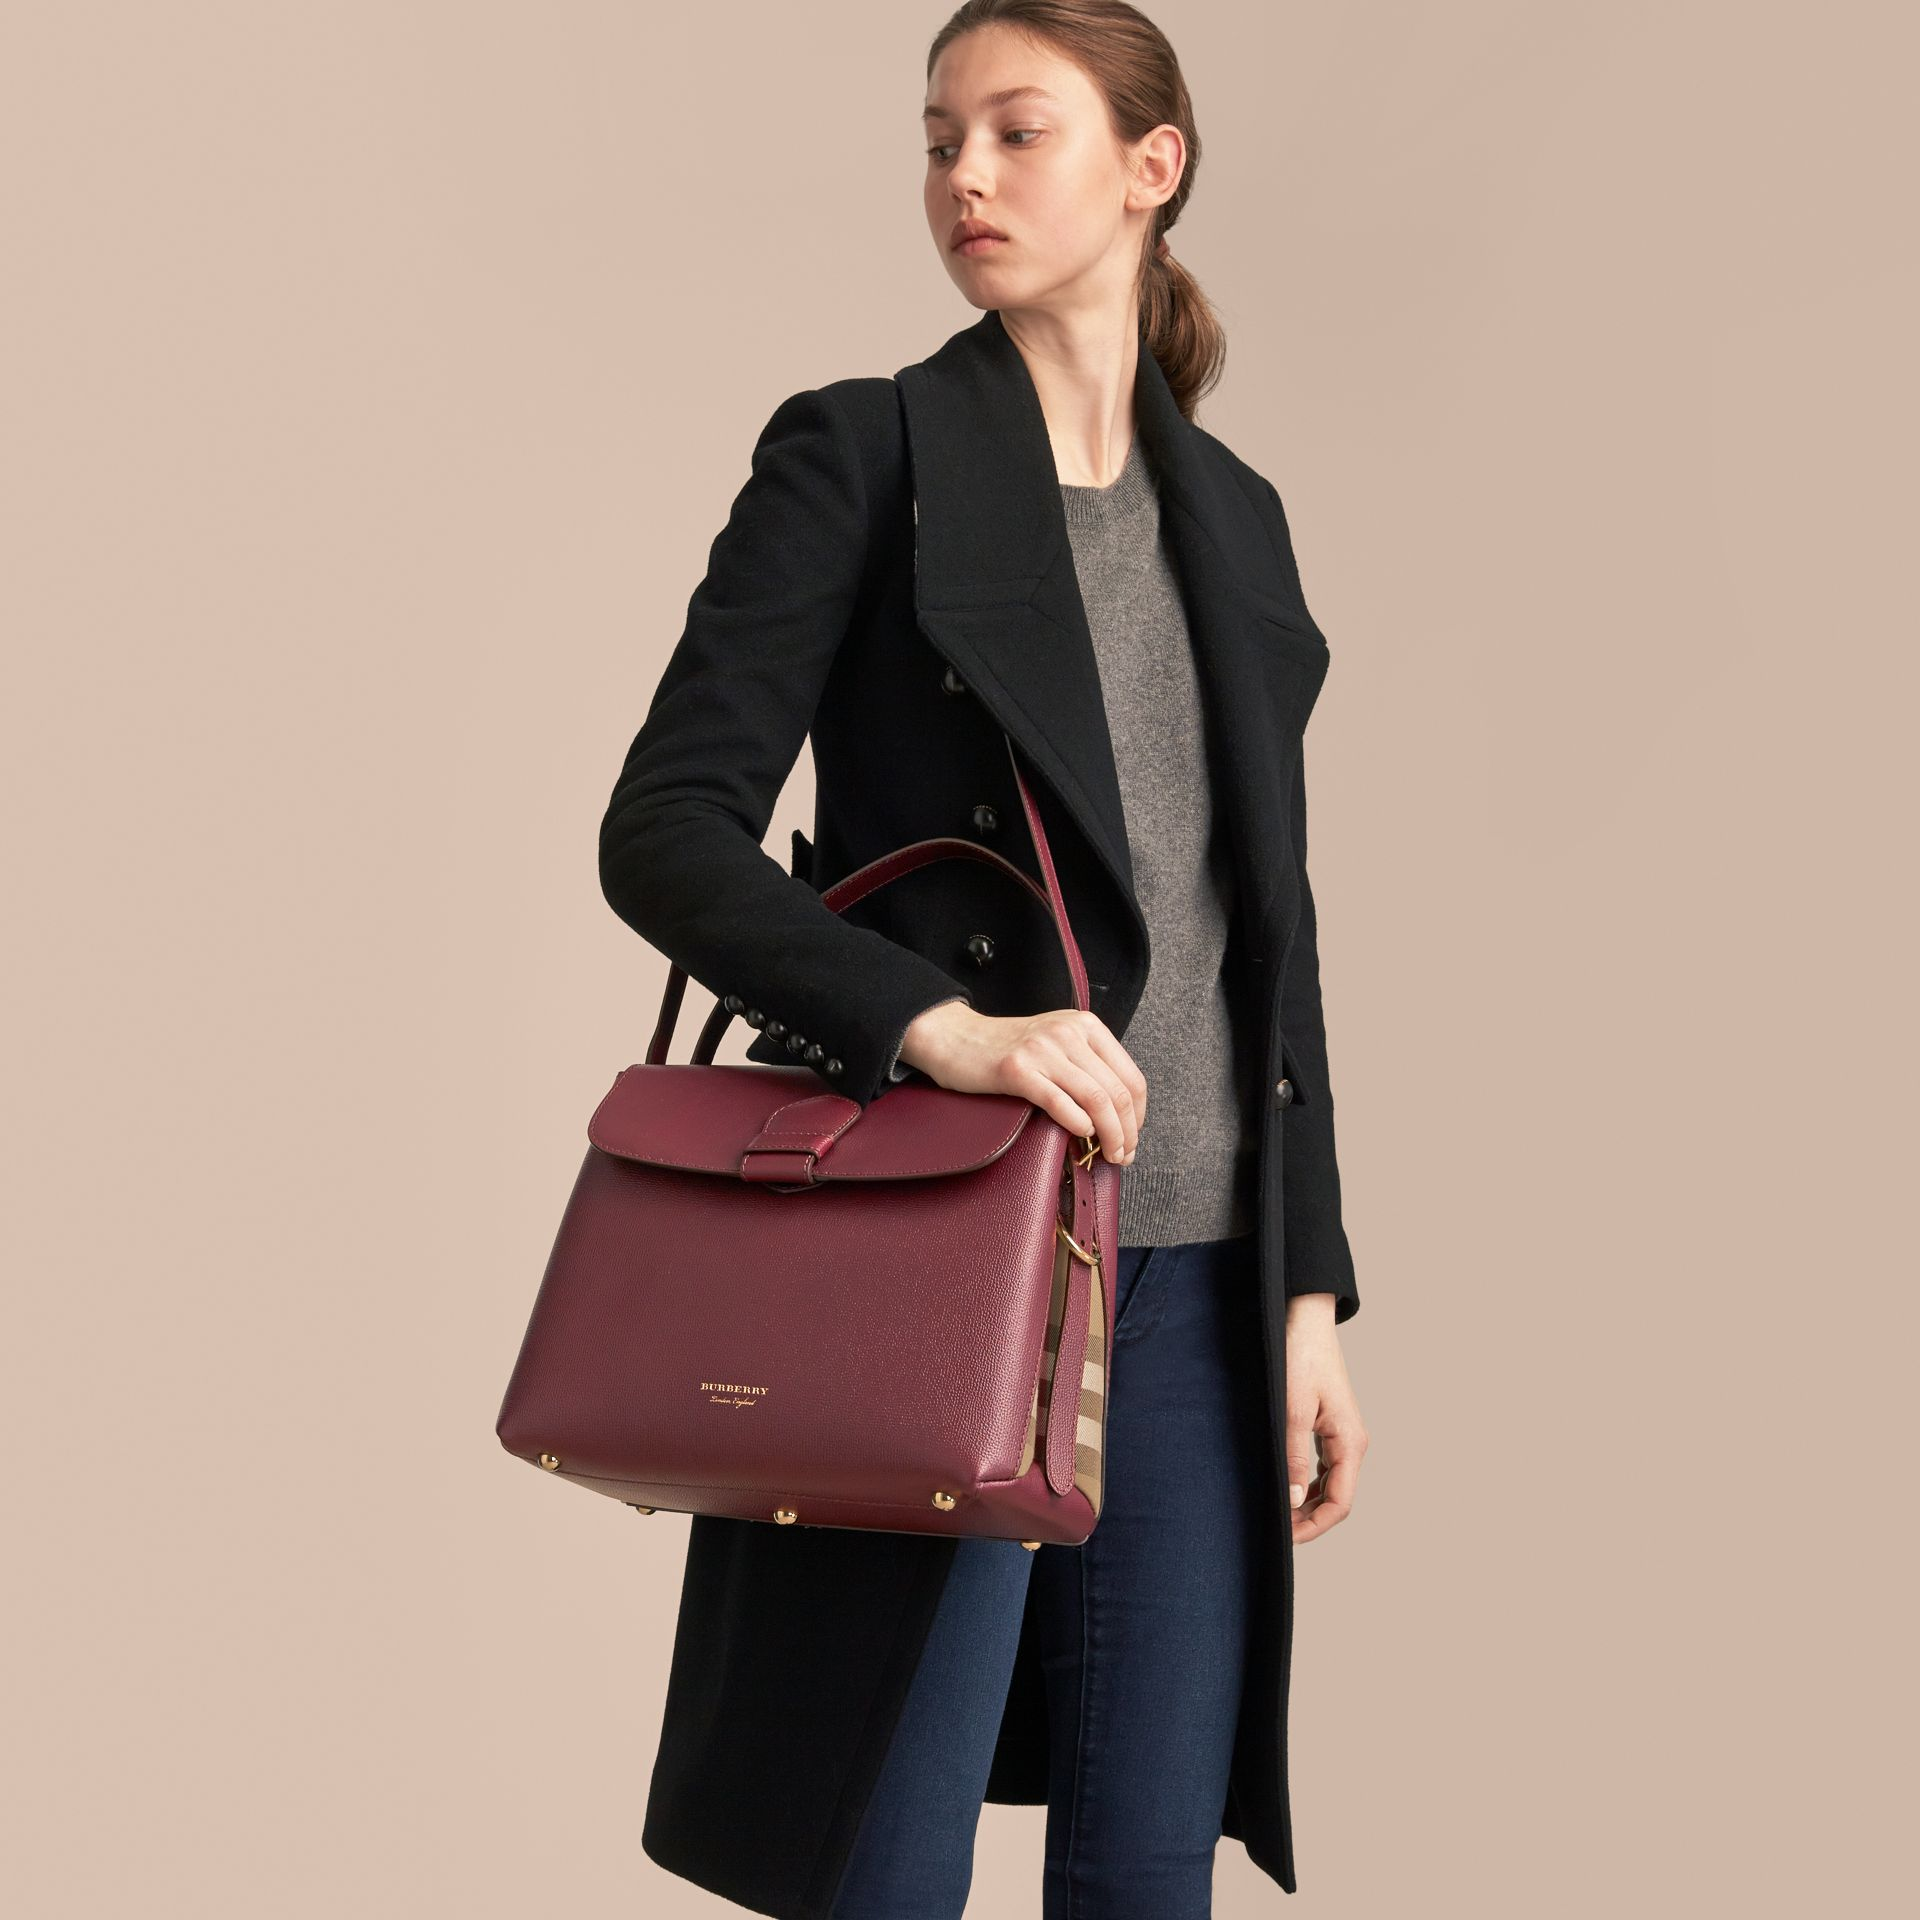 Medium Grainy Leather and House Check Tote Bag in Mahogany Red - Women | Burberry United Kingdom - gallery image 3